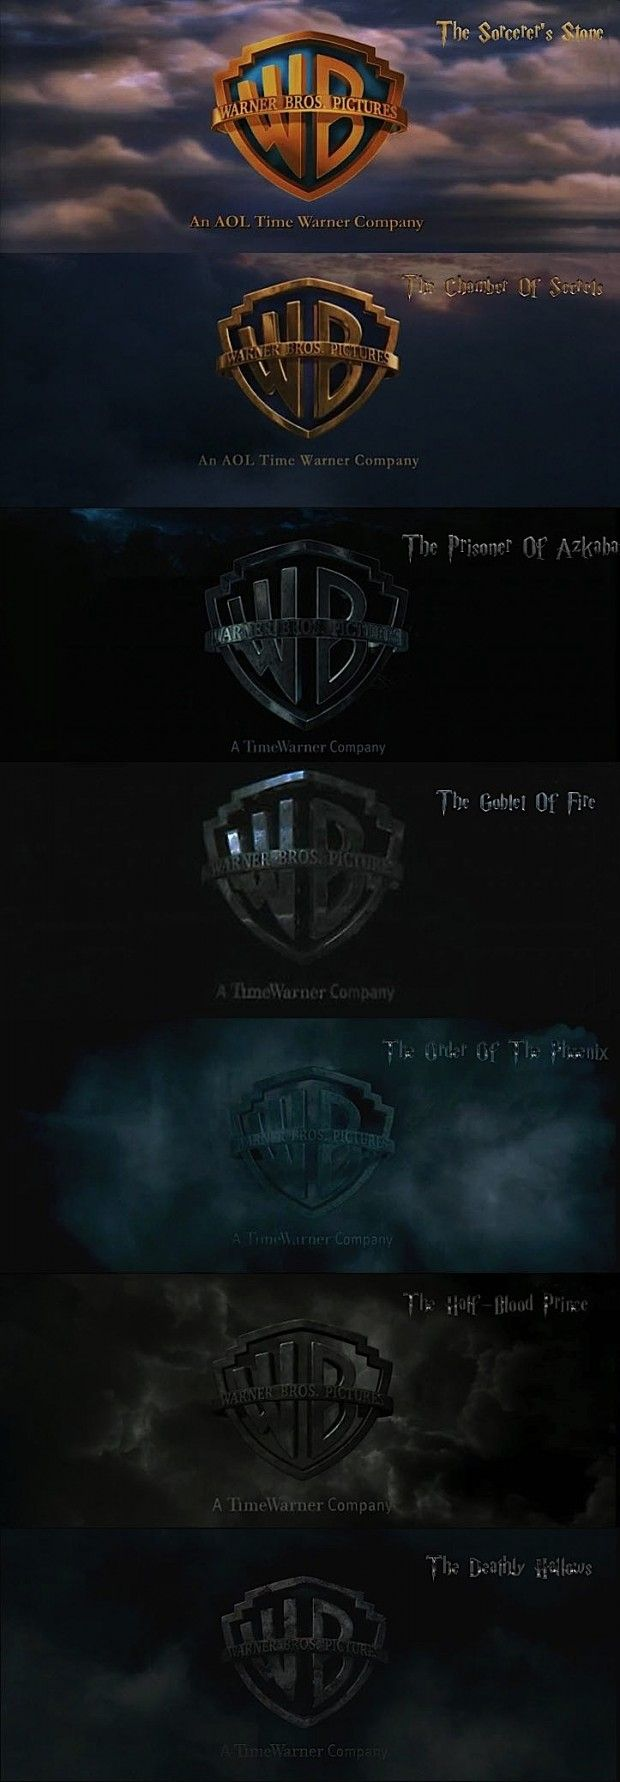 harry potterGeek, Film, Warner Bros, Harrypotter, Book, Darker, Harry Potter Movie, Things, Wb Logo